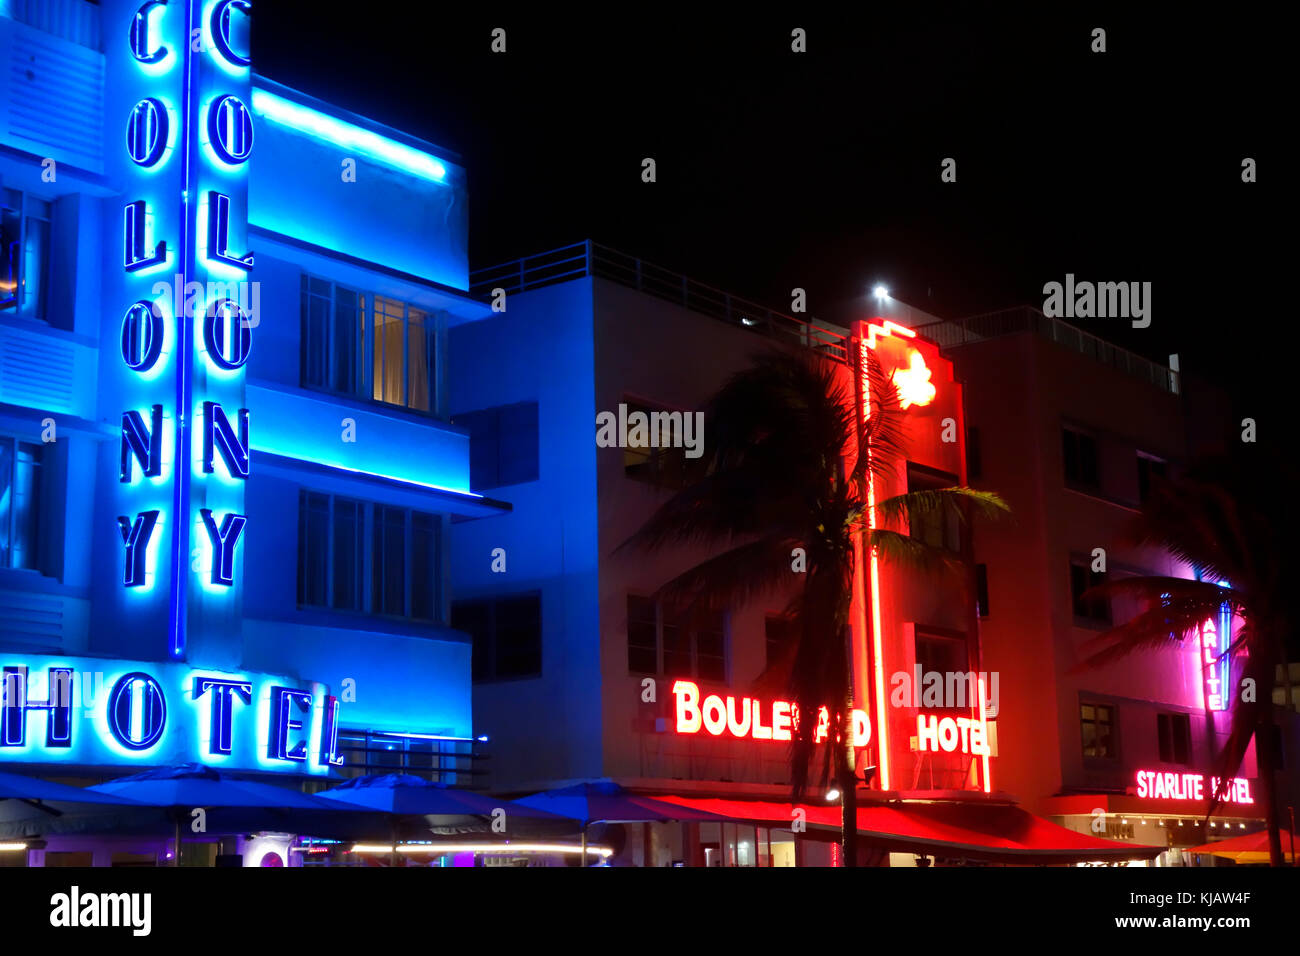 The Colony Hotel, South Beach, Ocean Drive, Miami, Florida, United States of America, USA - Stock Image